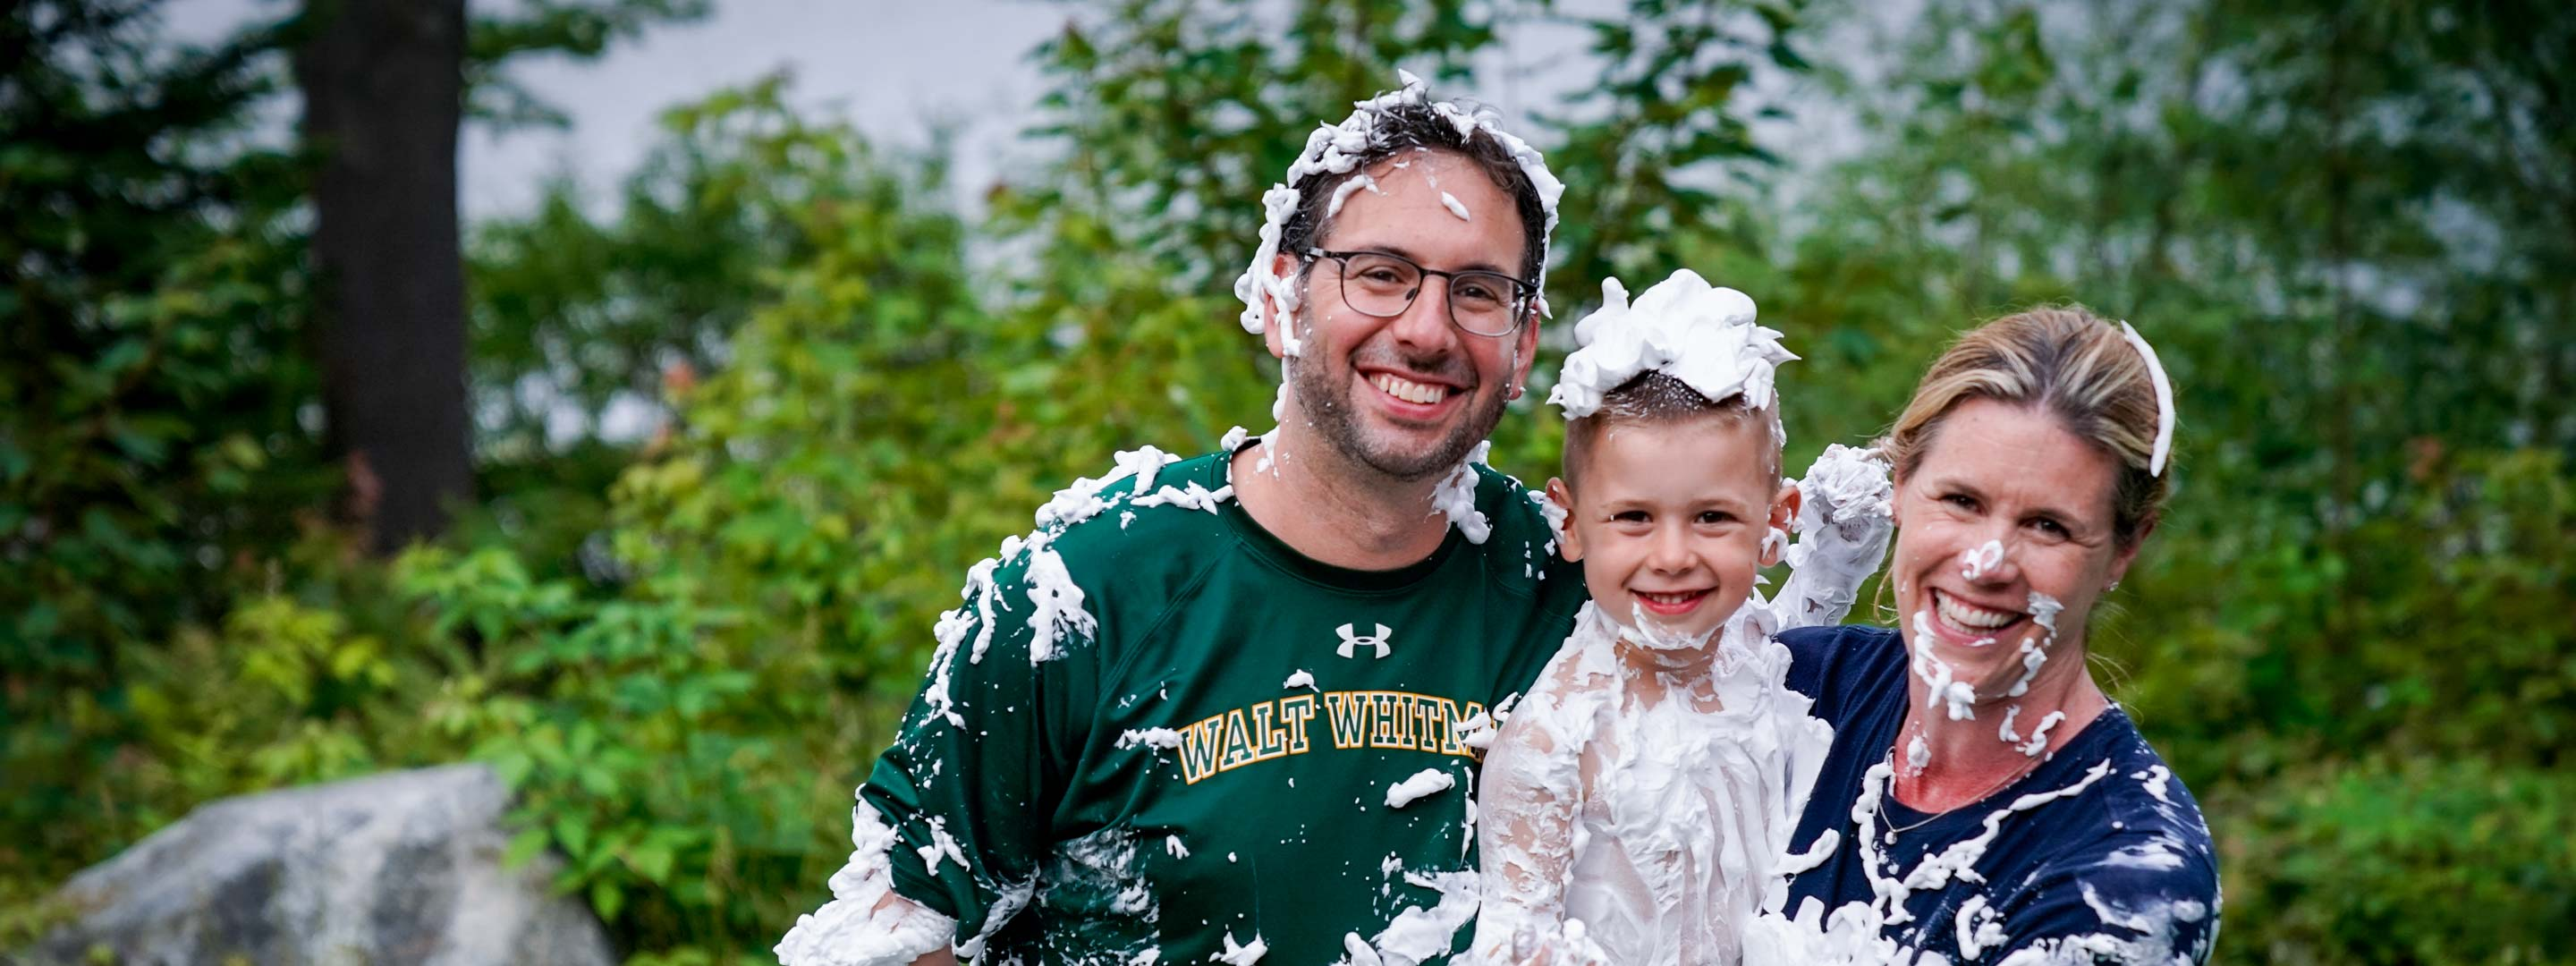 jed dorman with a woman and child covered in whipped cream